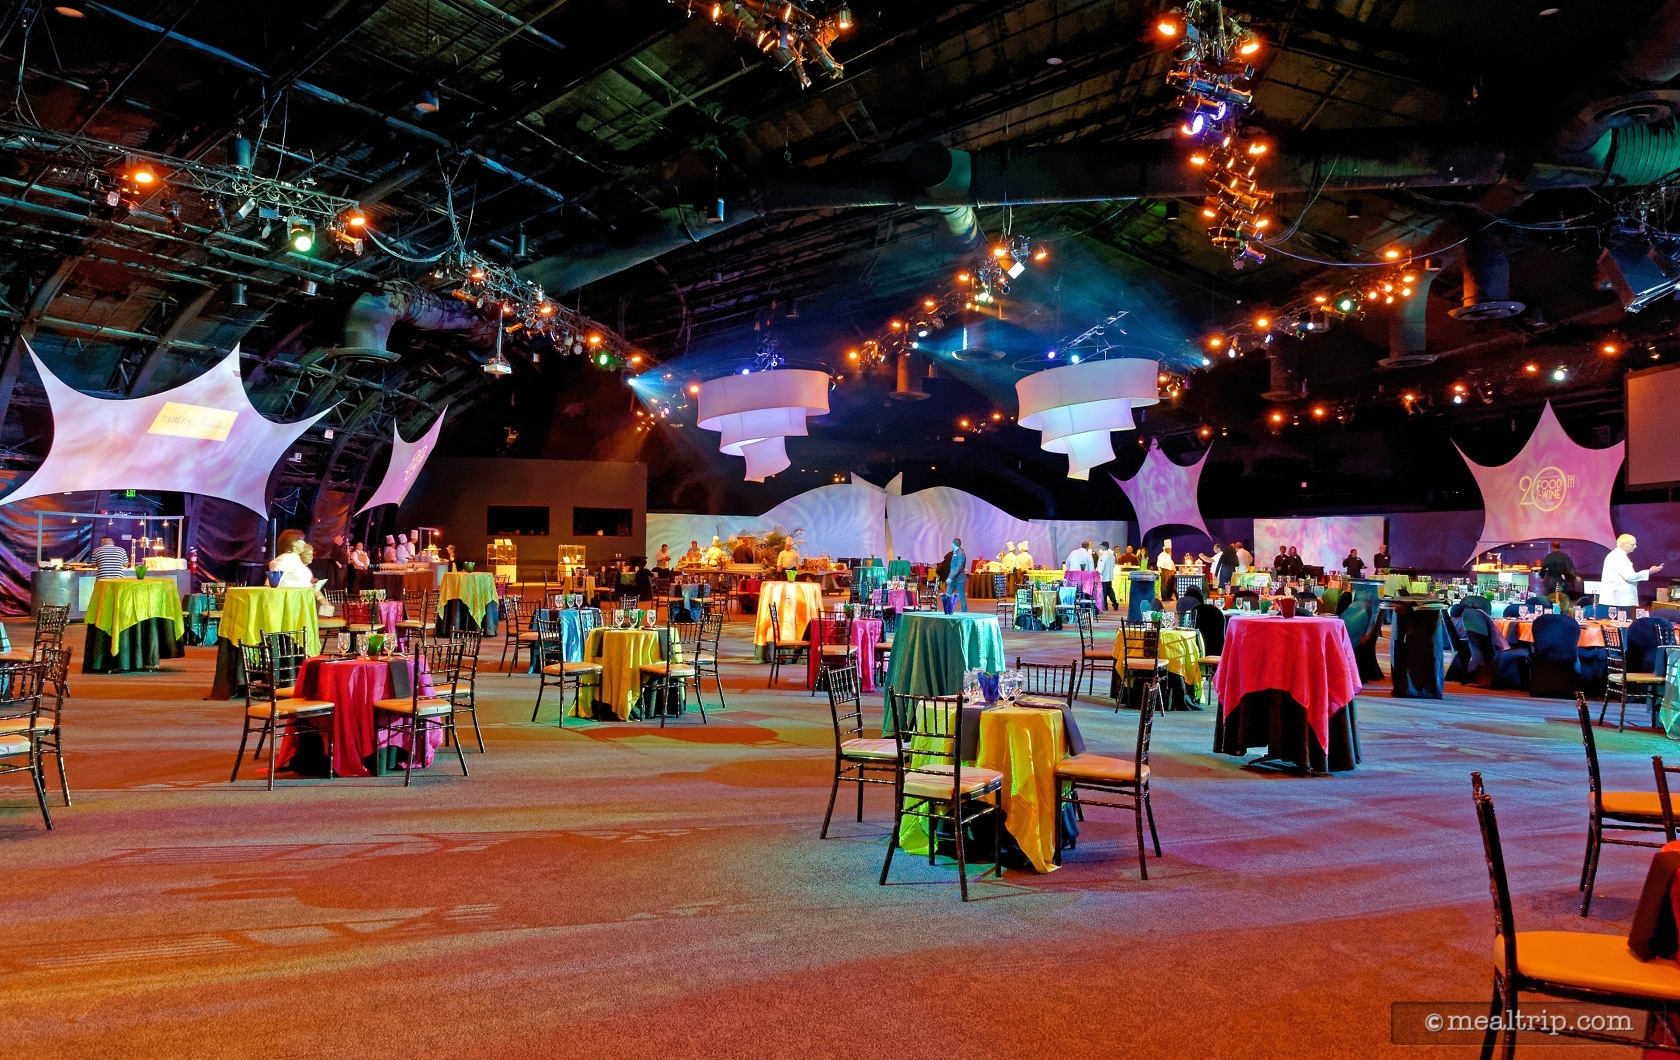 Exceptional The Spacious West Hall At Epcotu0027s World Showplace Events Pavilion Was Used  As The Main Dining